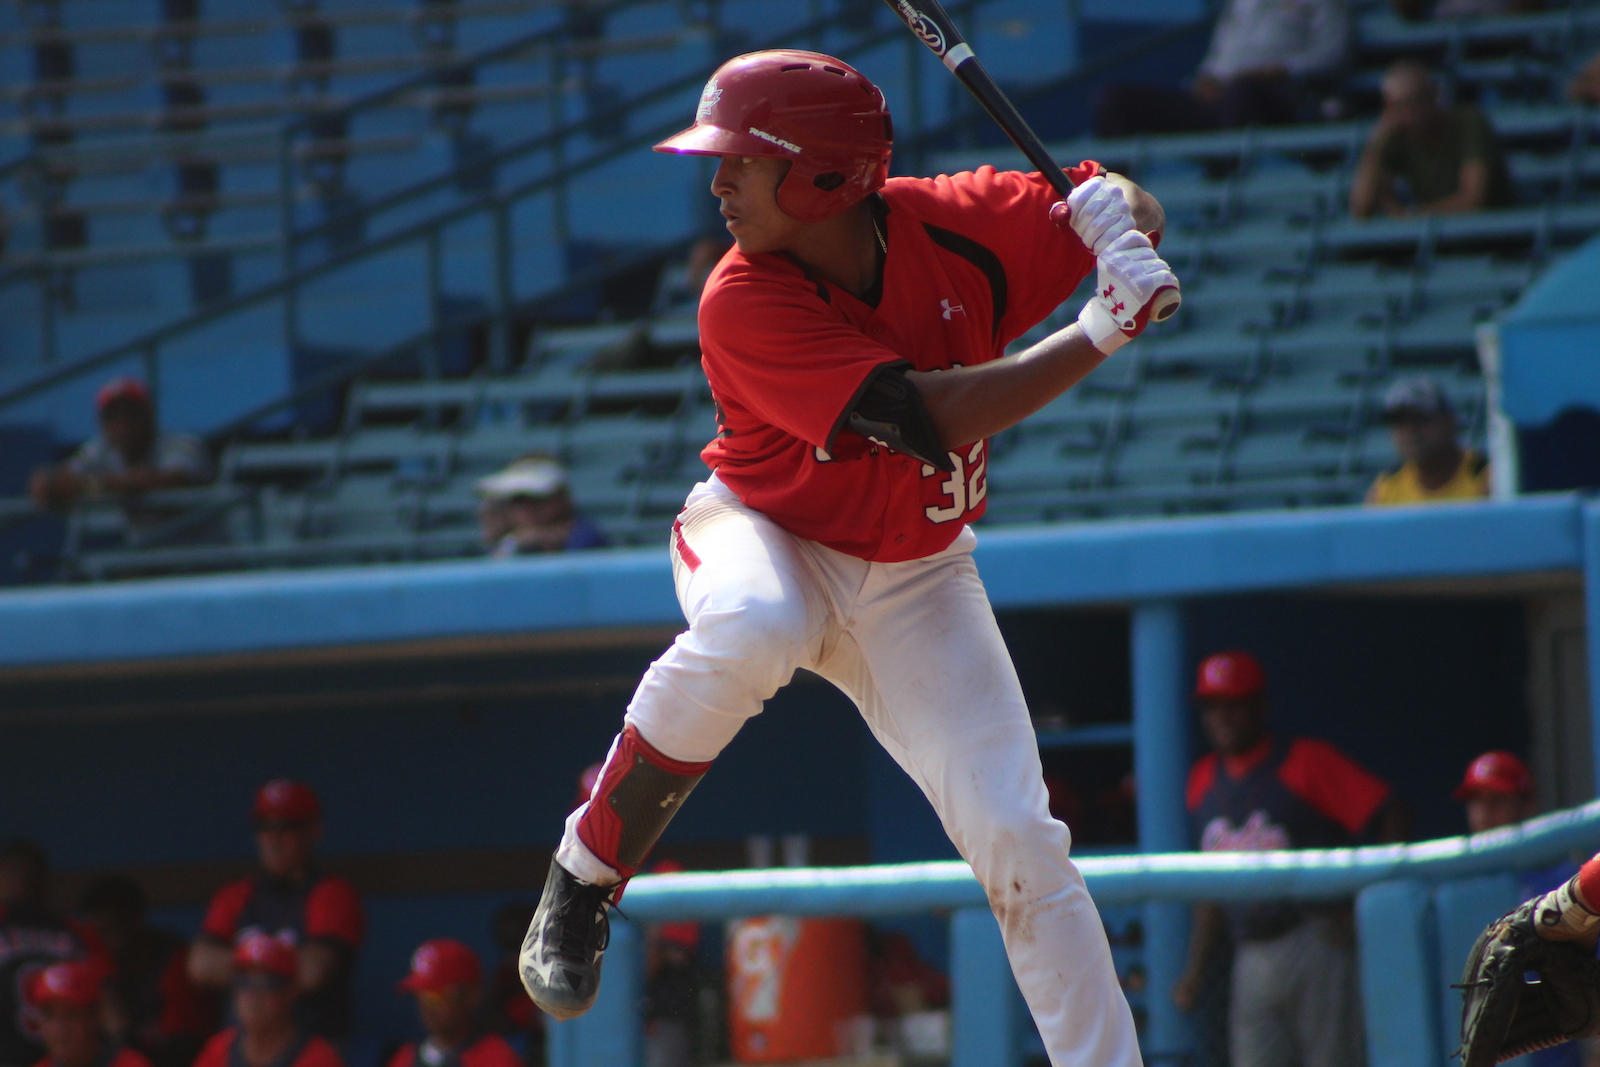 Naylor selected for High School Home Run Derby